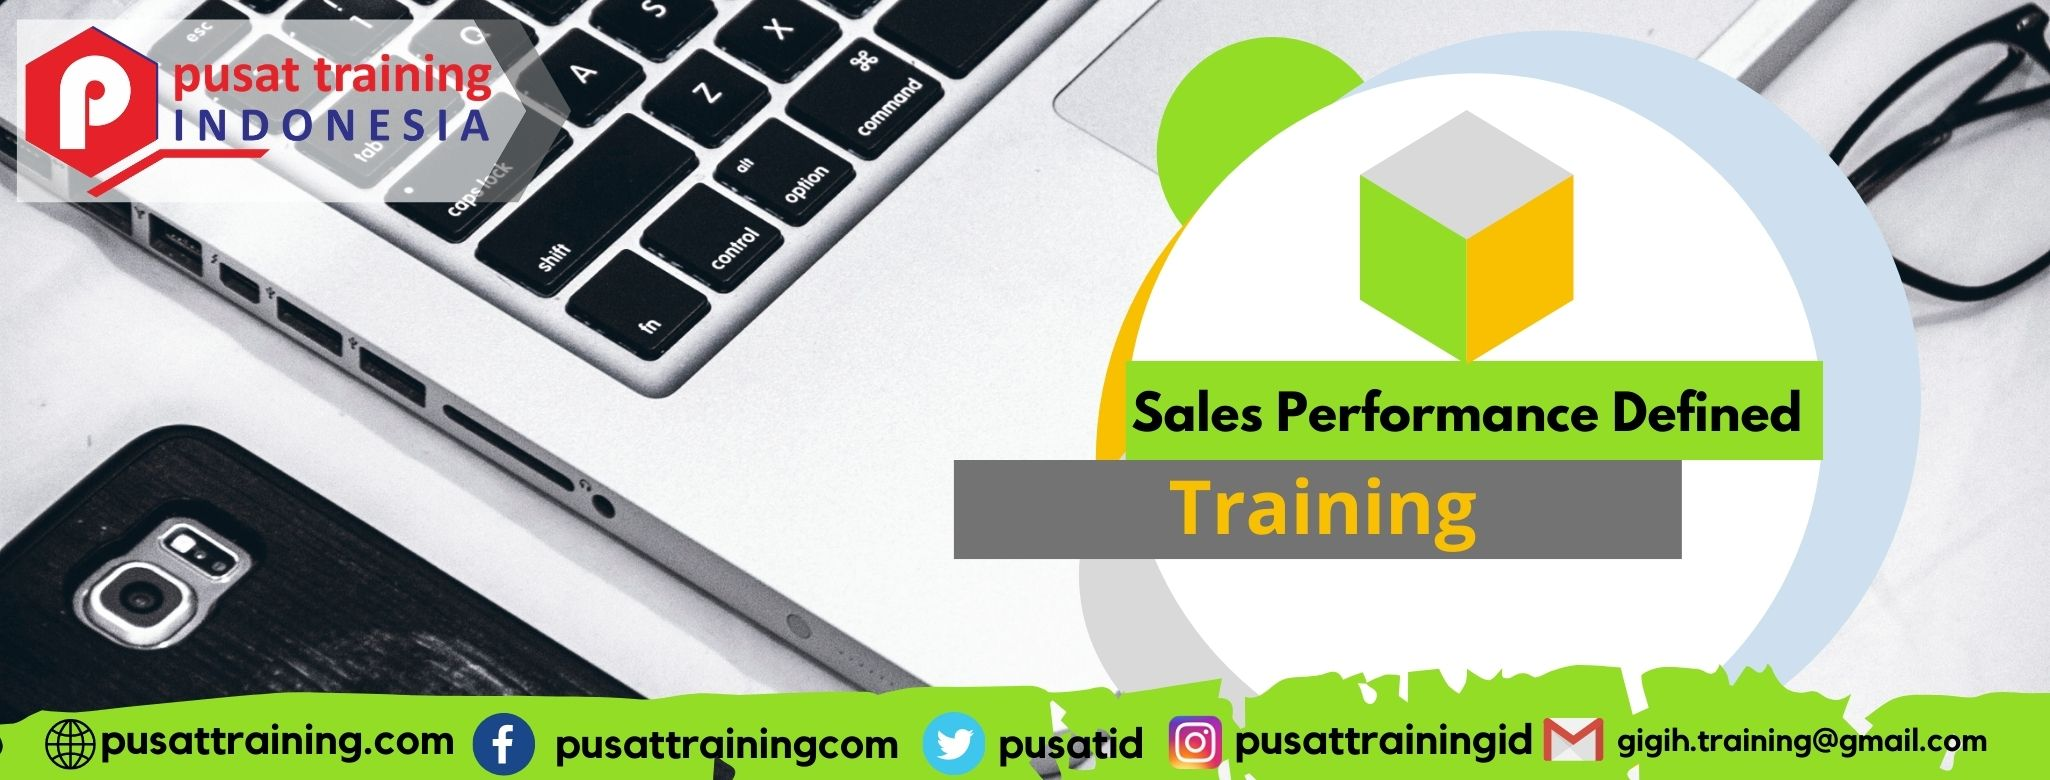 Training Sales Performance Defined